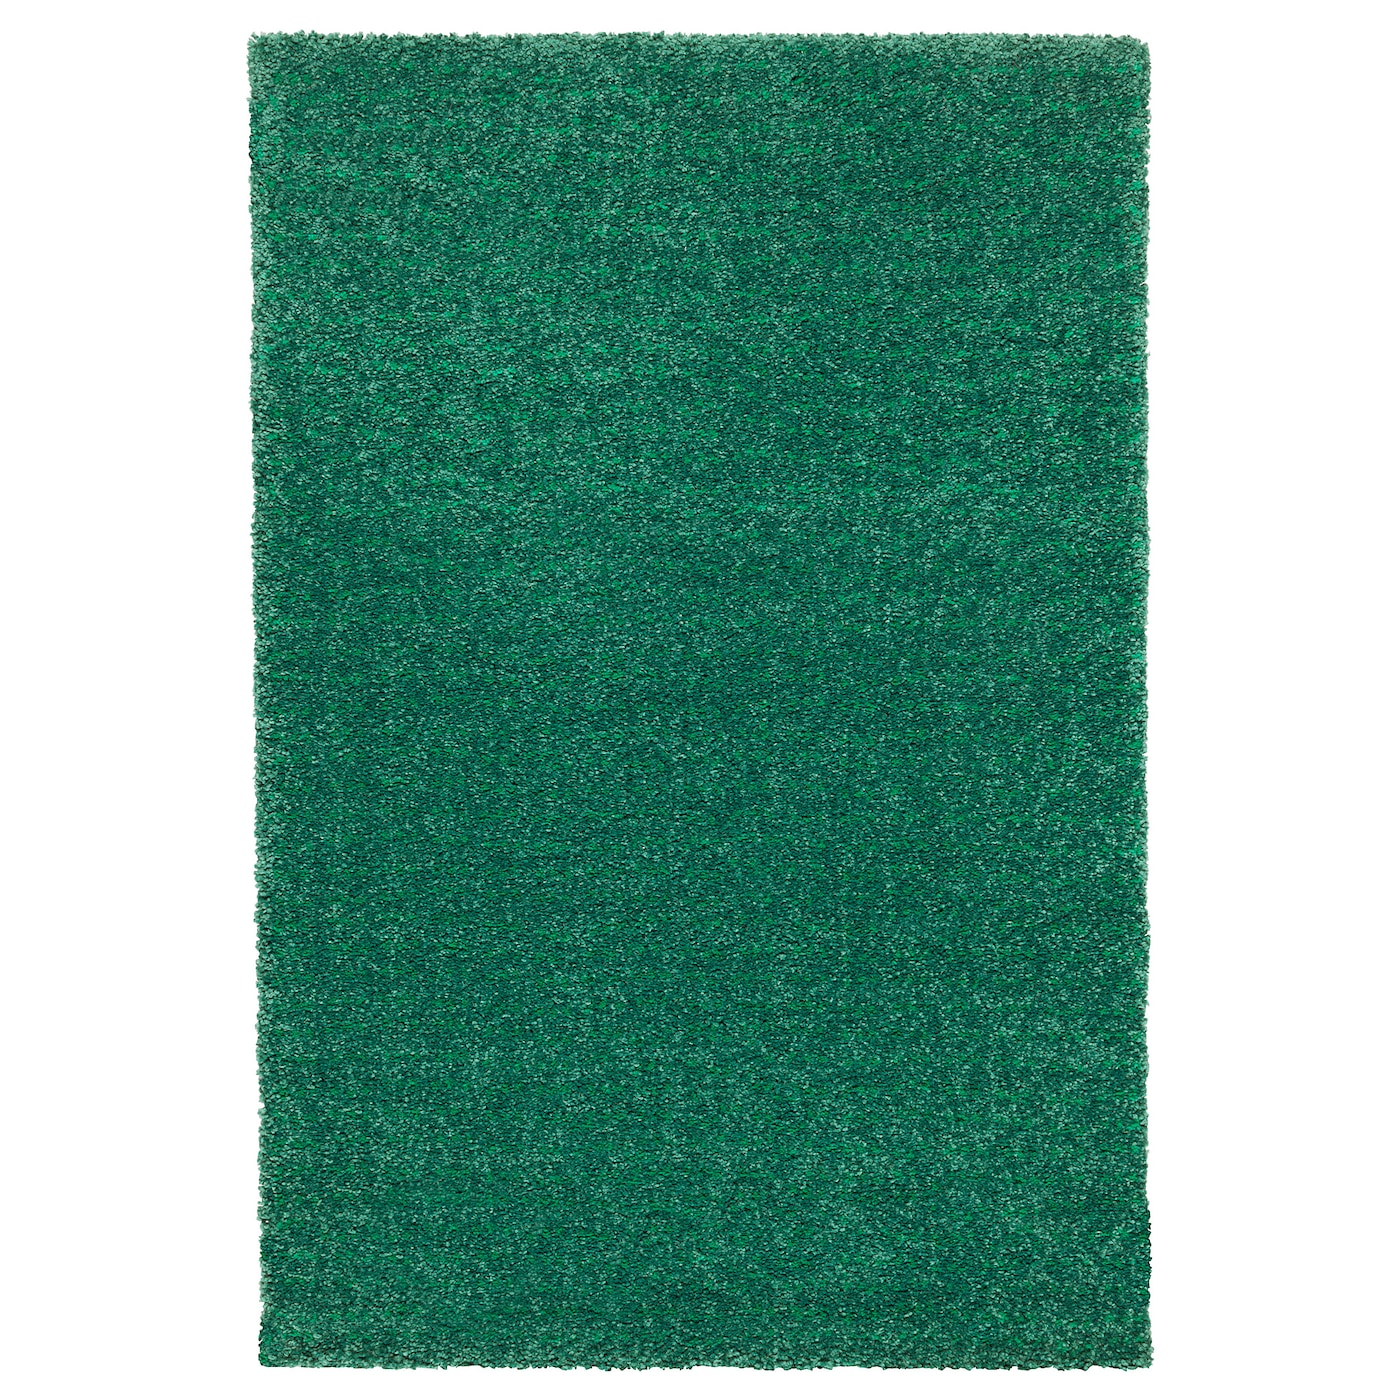 LANGSTED - Rug, low pile, green